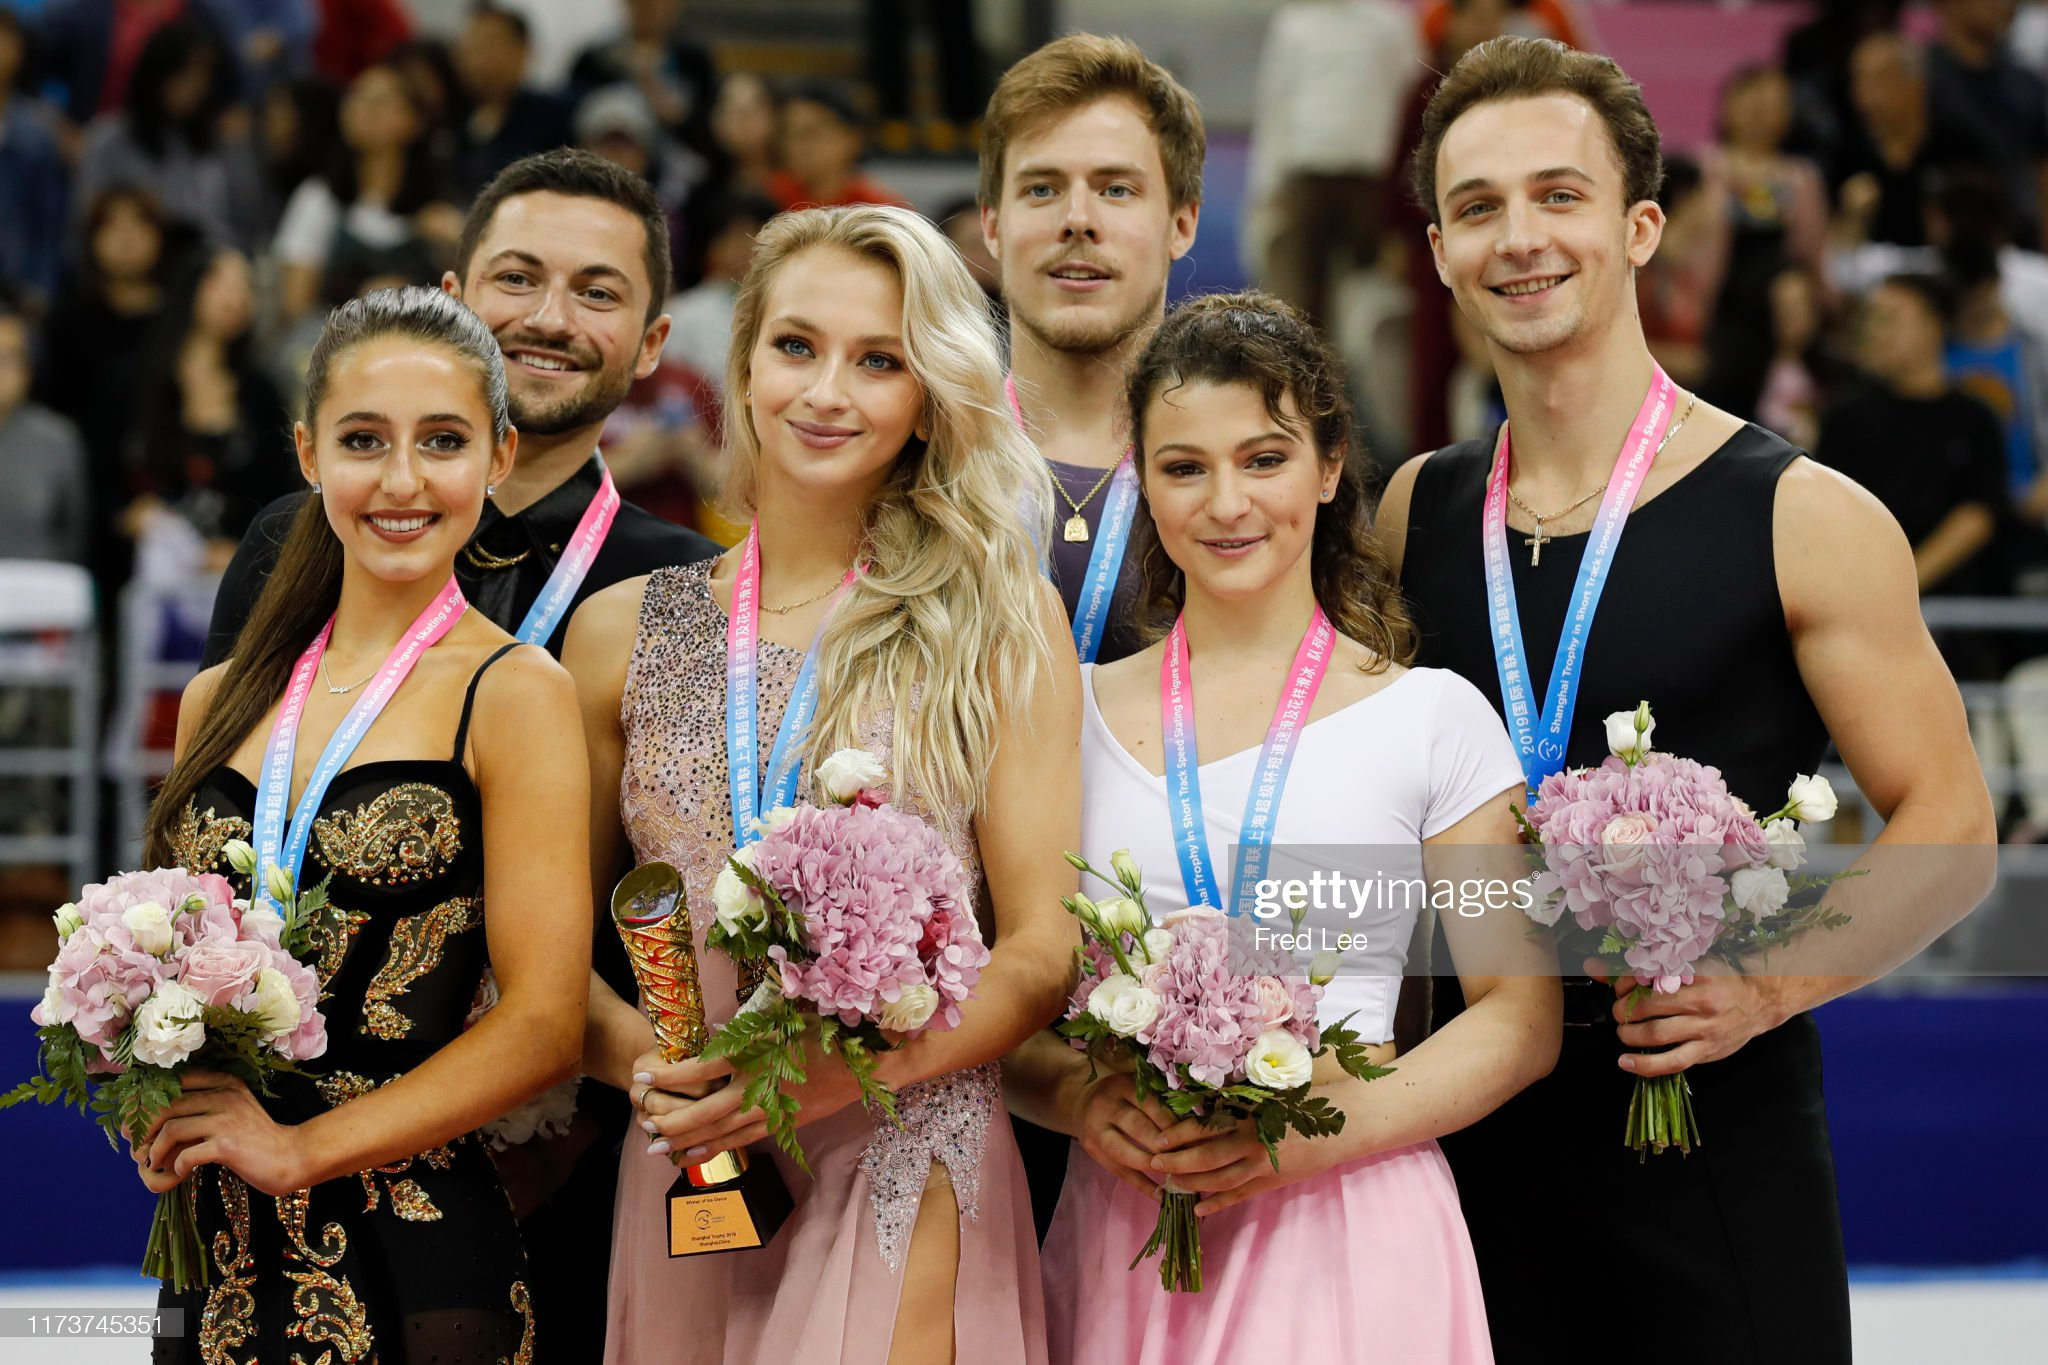 Shanghai Trophy (Invitational). 3-5 октября 2019. Шанхай (Китай) - Страница 7 Lilah-fear-and-lewis-gibson-of-great-britainvictoria-sinitsina-and-picture-id1173745351?s=2048x2048